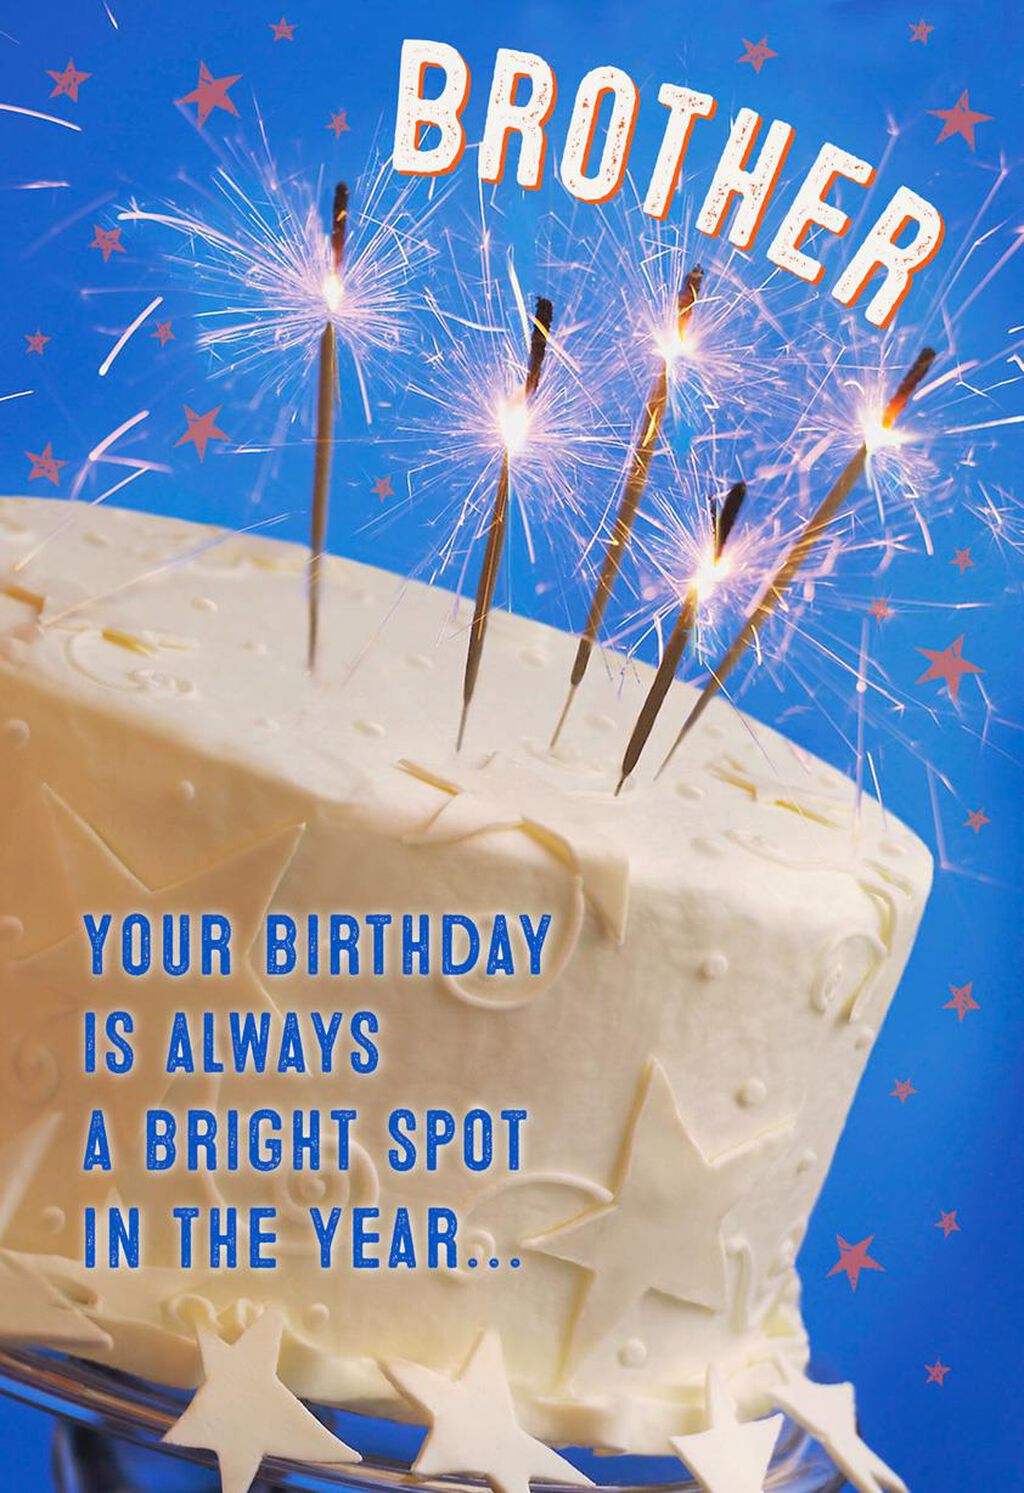 Birthday Cake With Sparklers Card For Brother